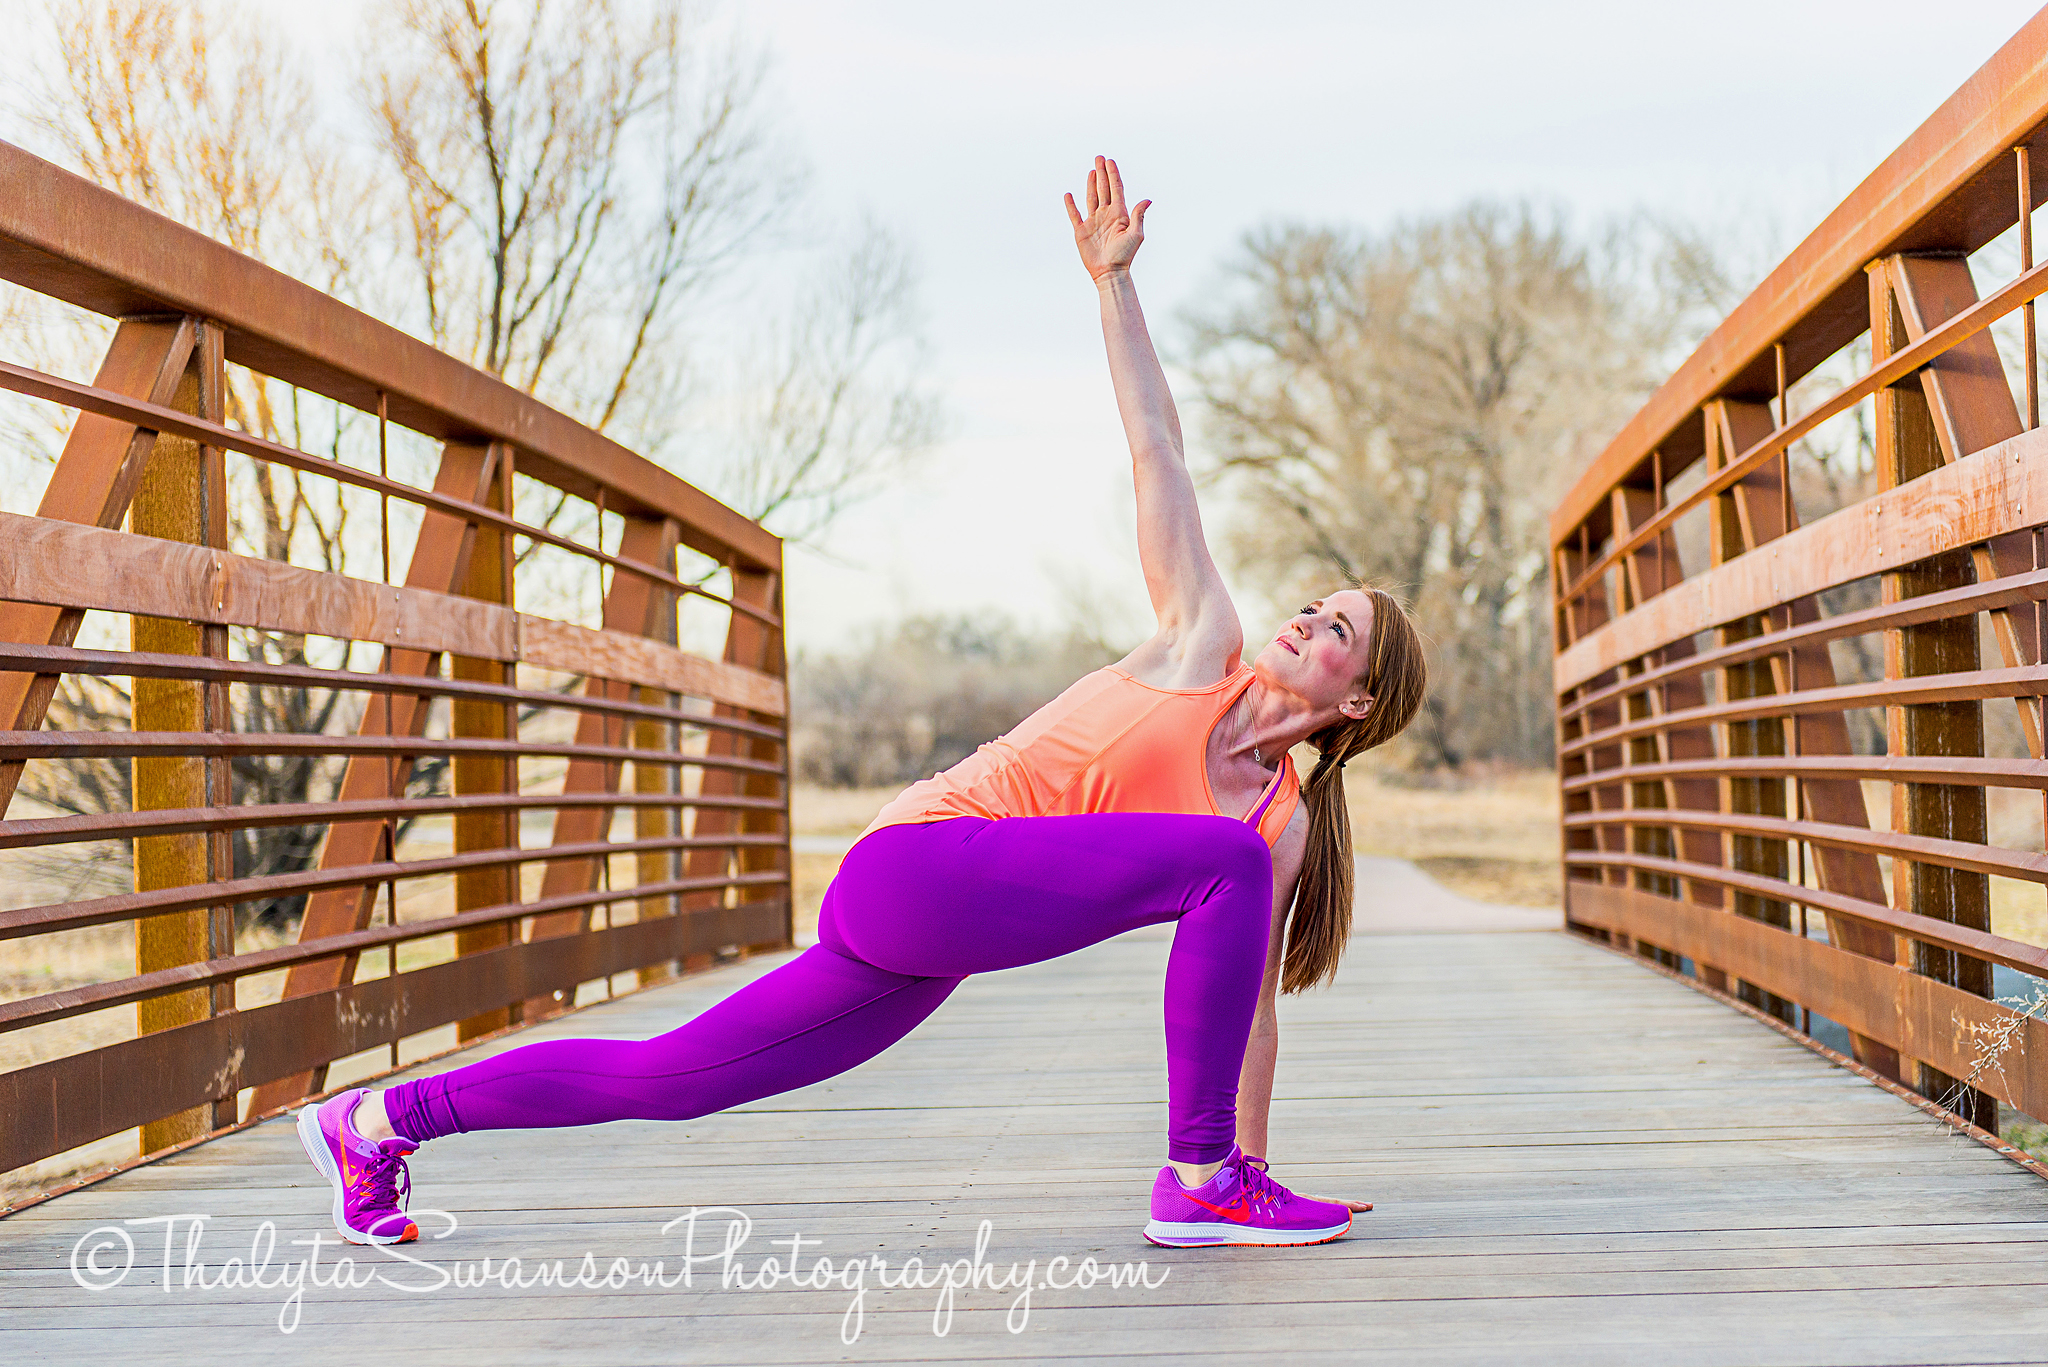 Thalyta Swanson Photography - Fitness Photos (7)